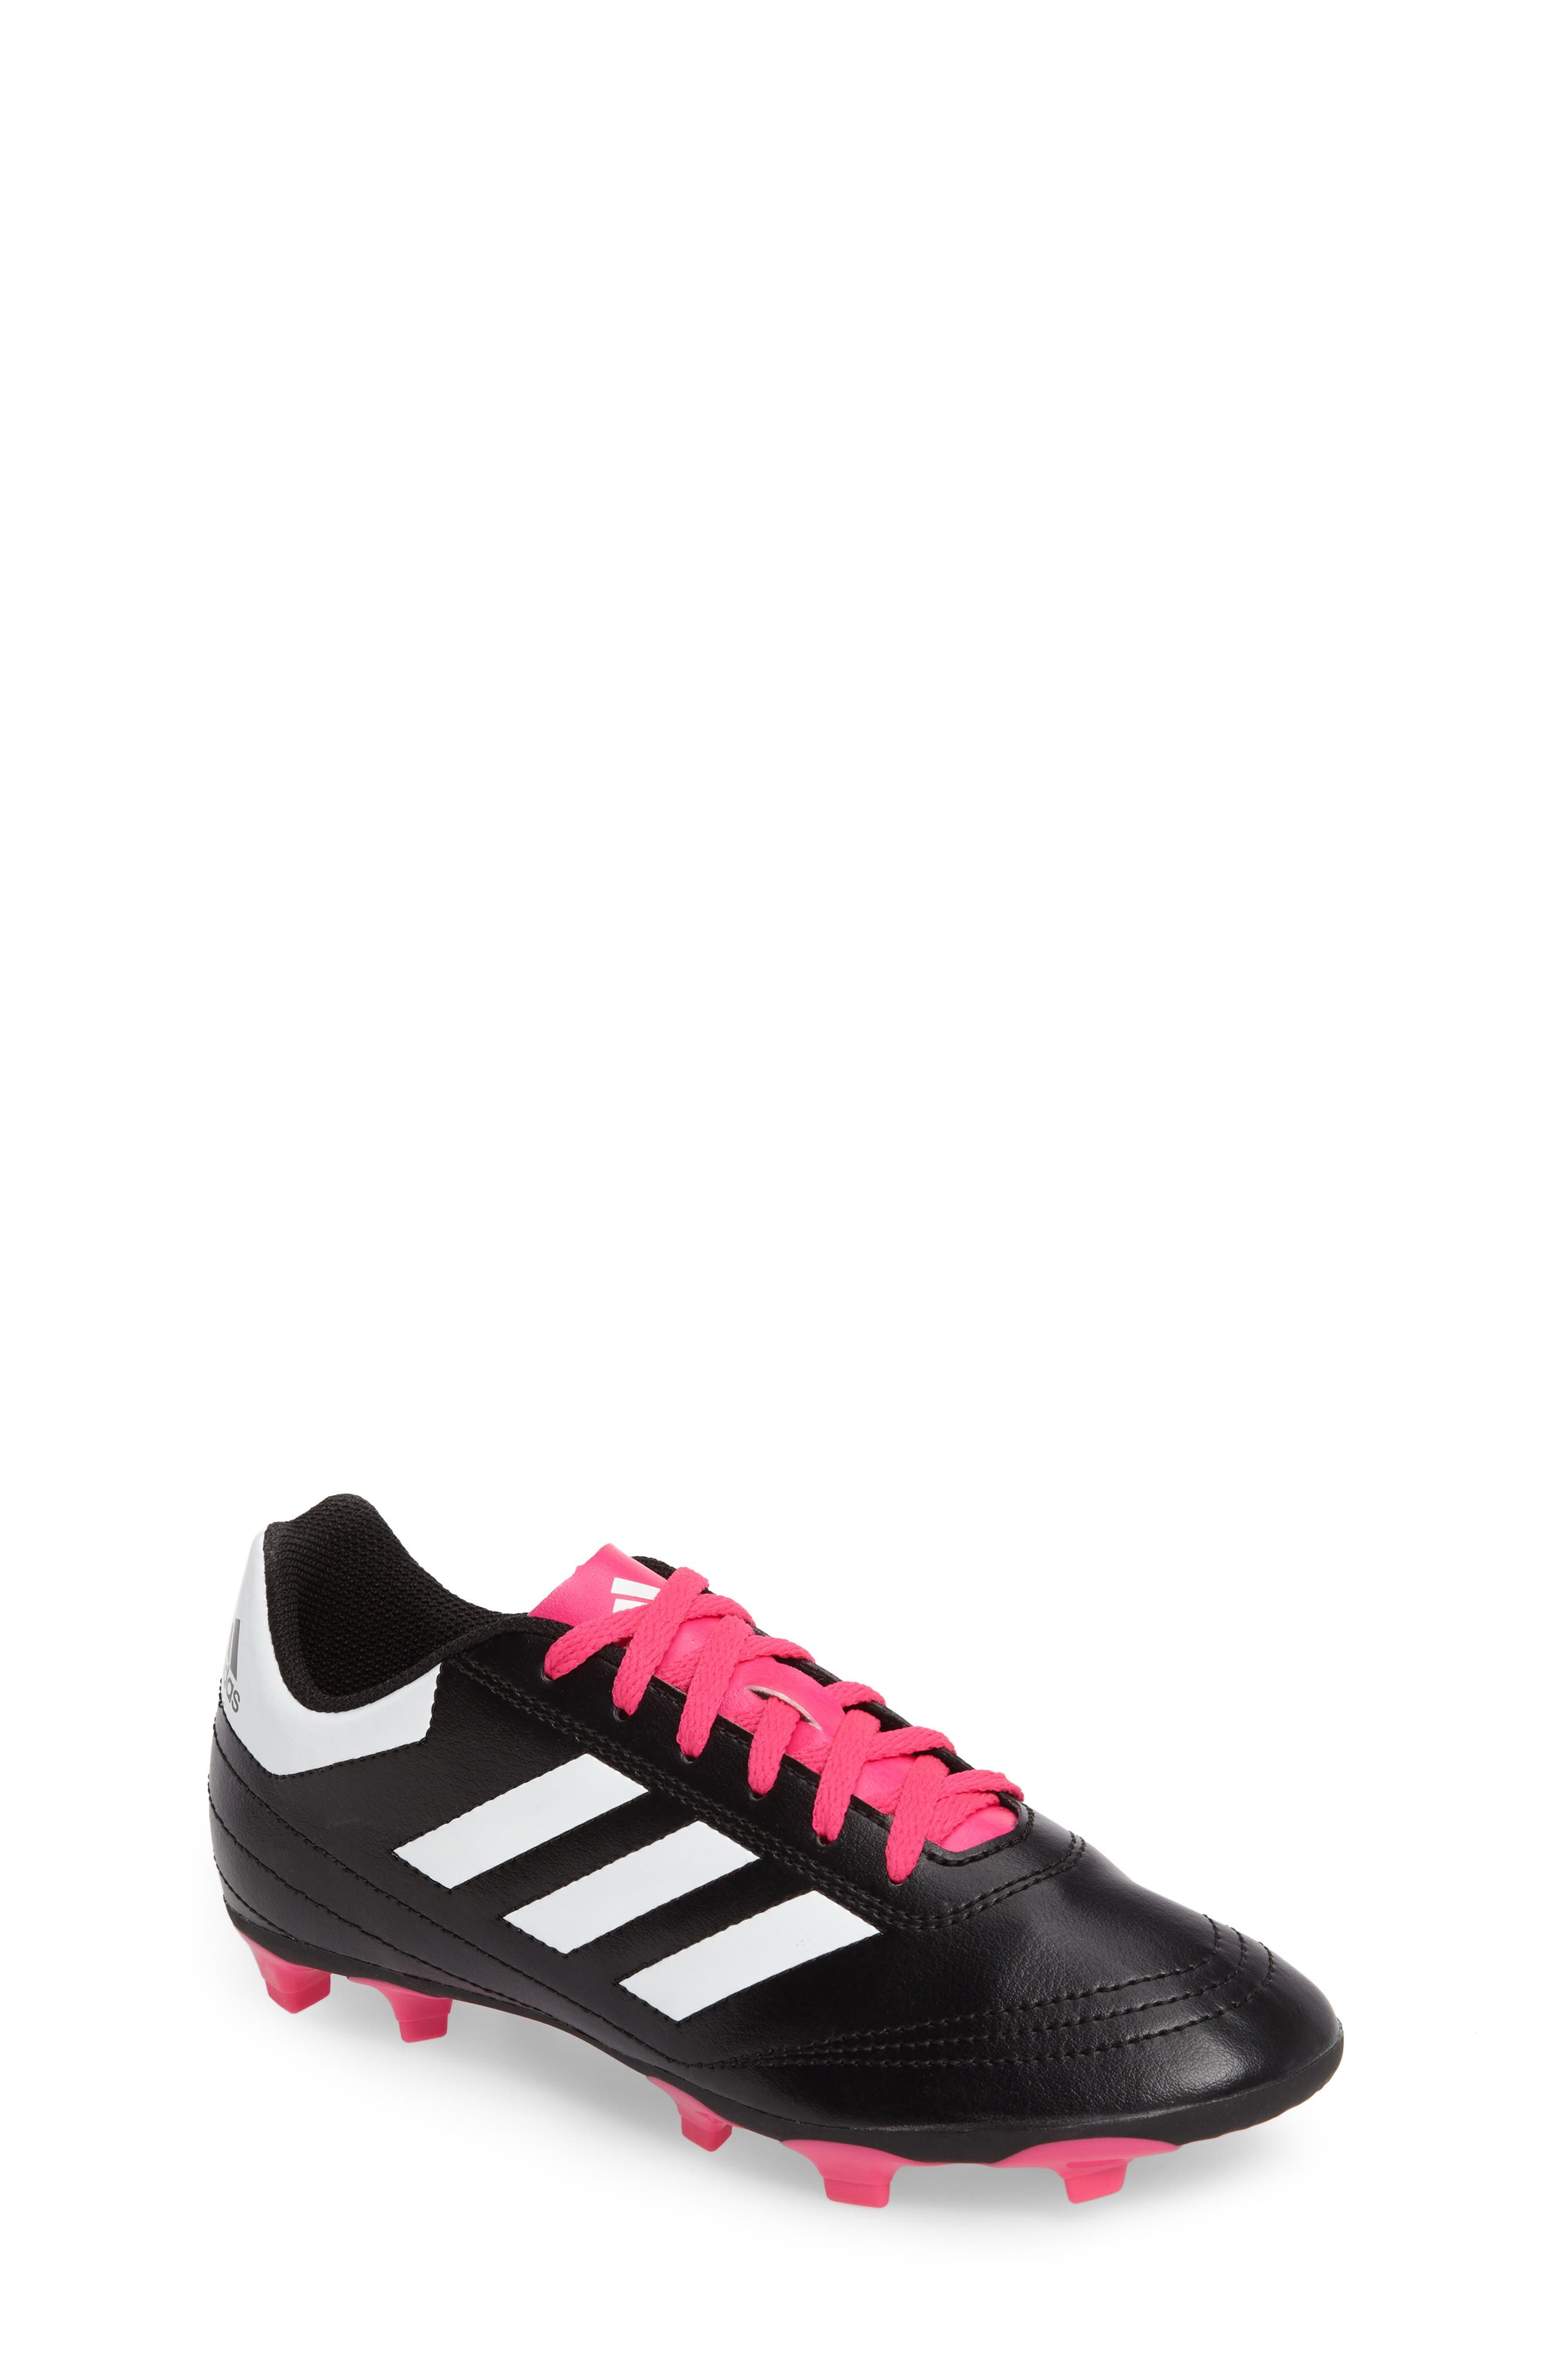 ... adidas goletto vi soccer shoe toddler little kid big